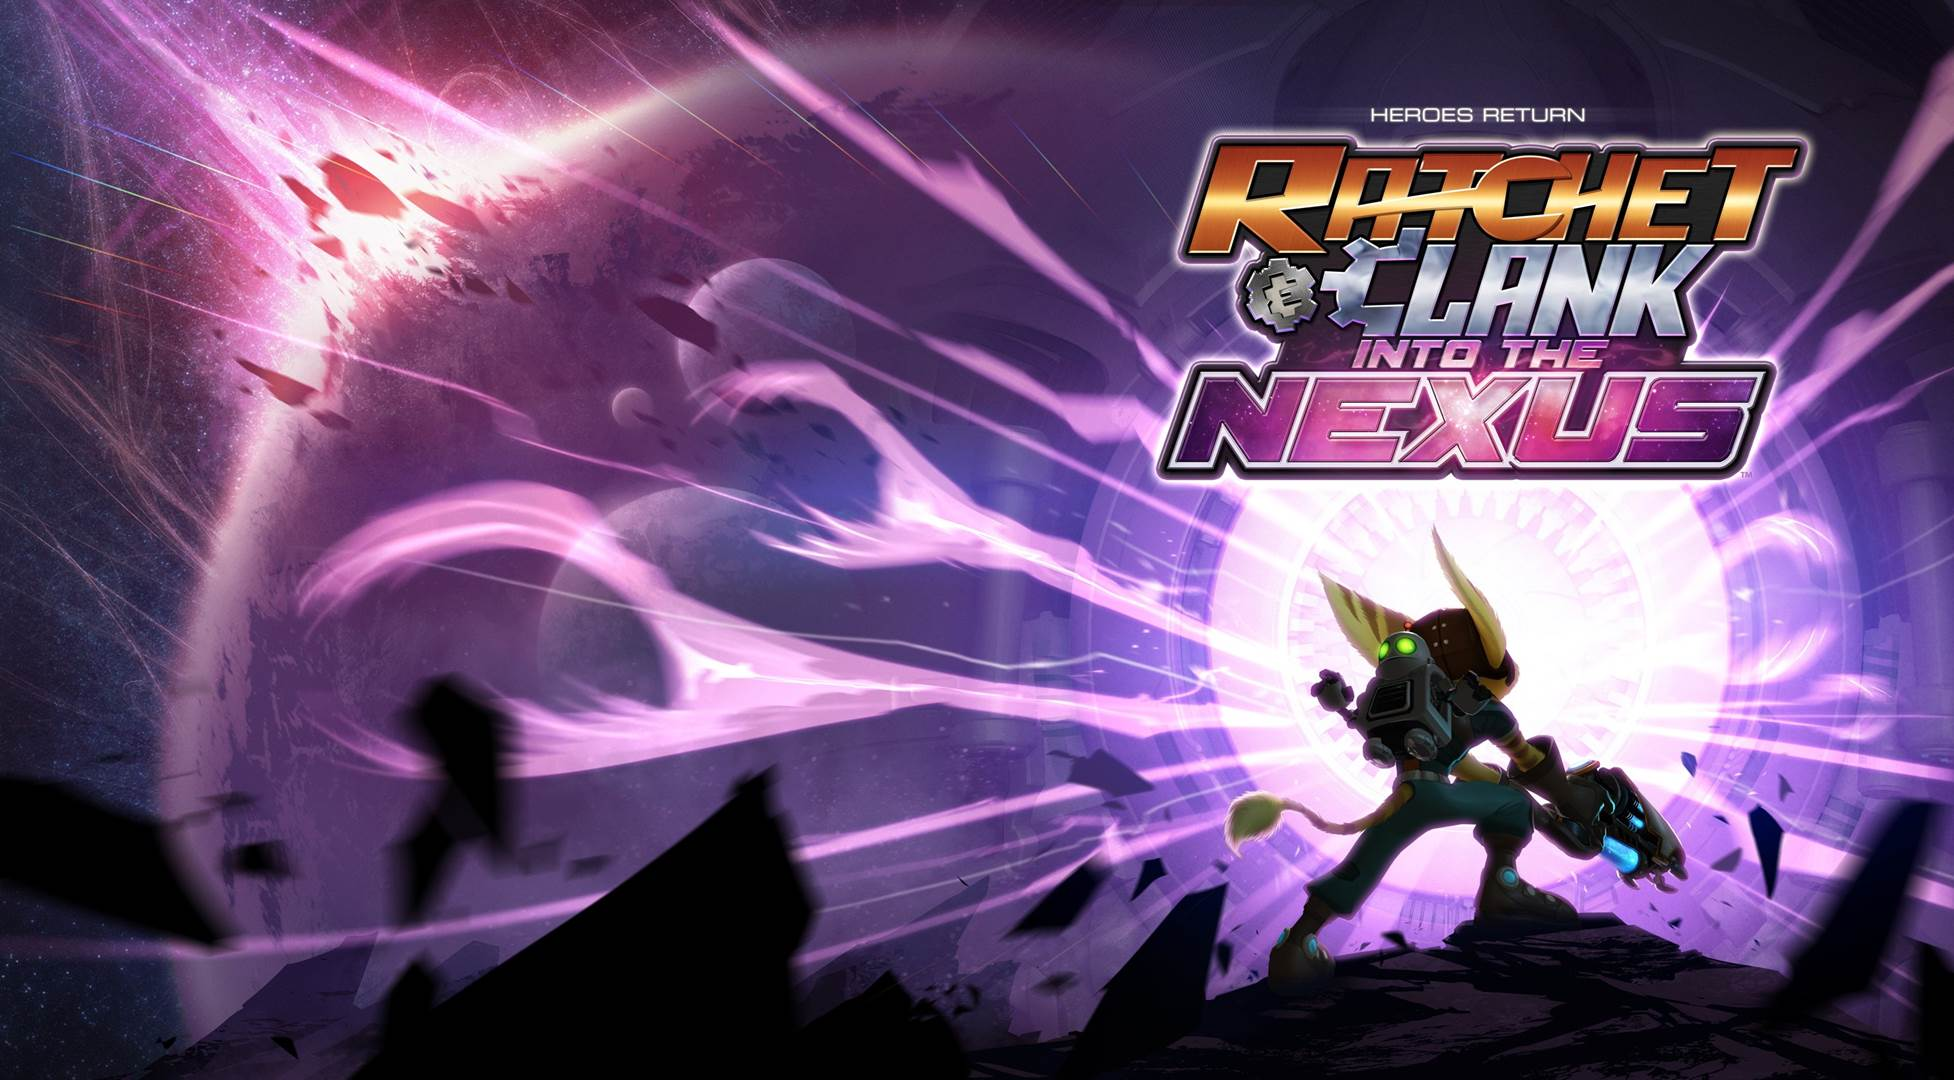 Ratchet And Clank Into The Nexus Wallpapers in 1080P HD GamingBolt 1954x1080